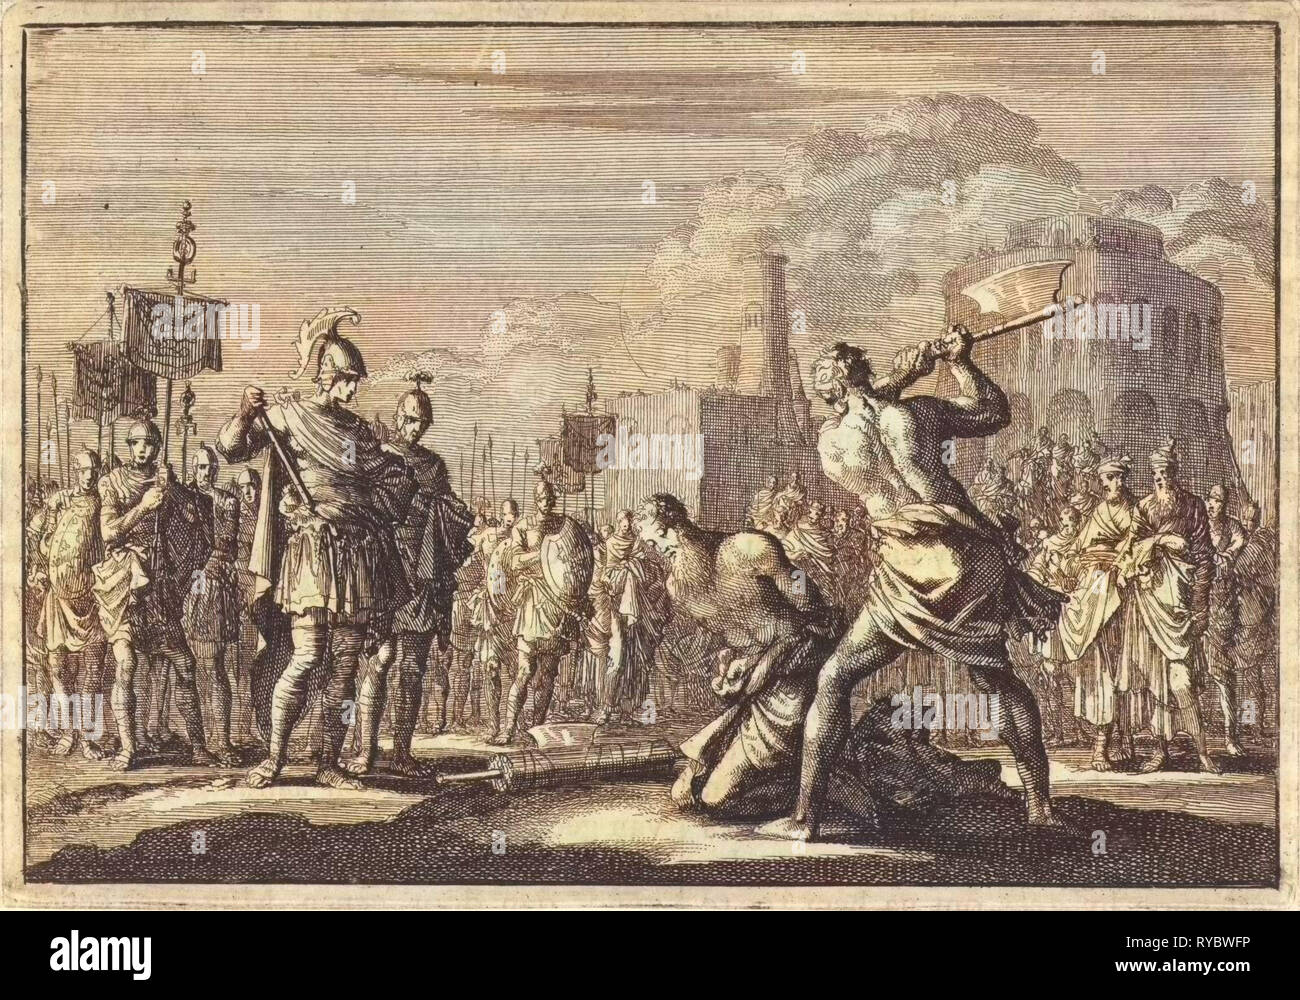 The beheading of Antigonus ordered by Anthony, Jan Luyken, Pieter Mortier, 1704 - Stock Image